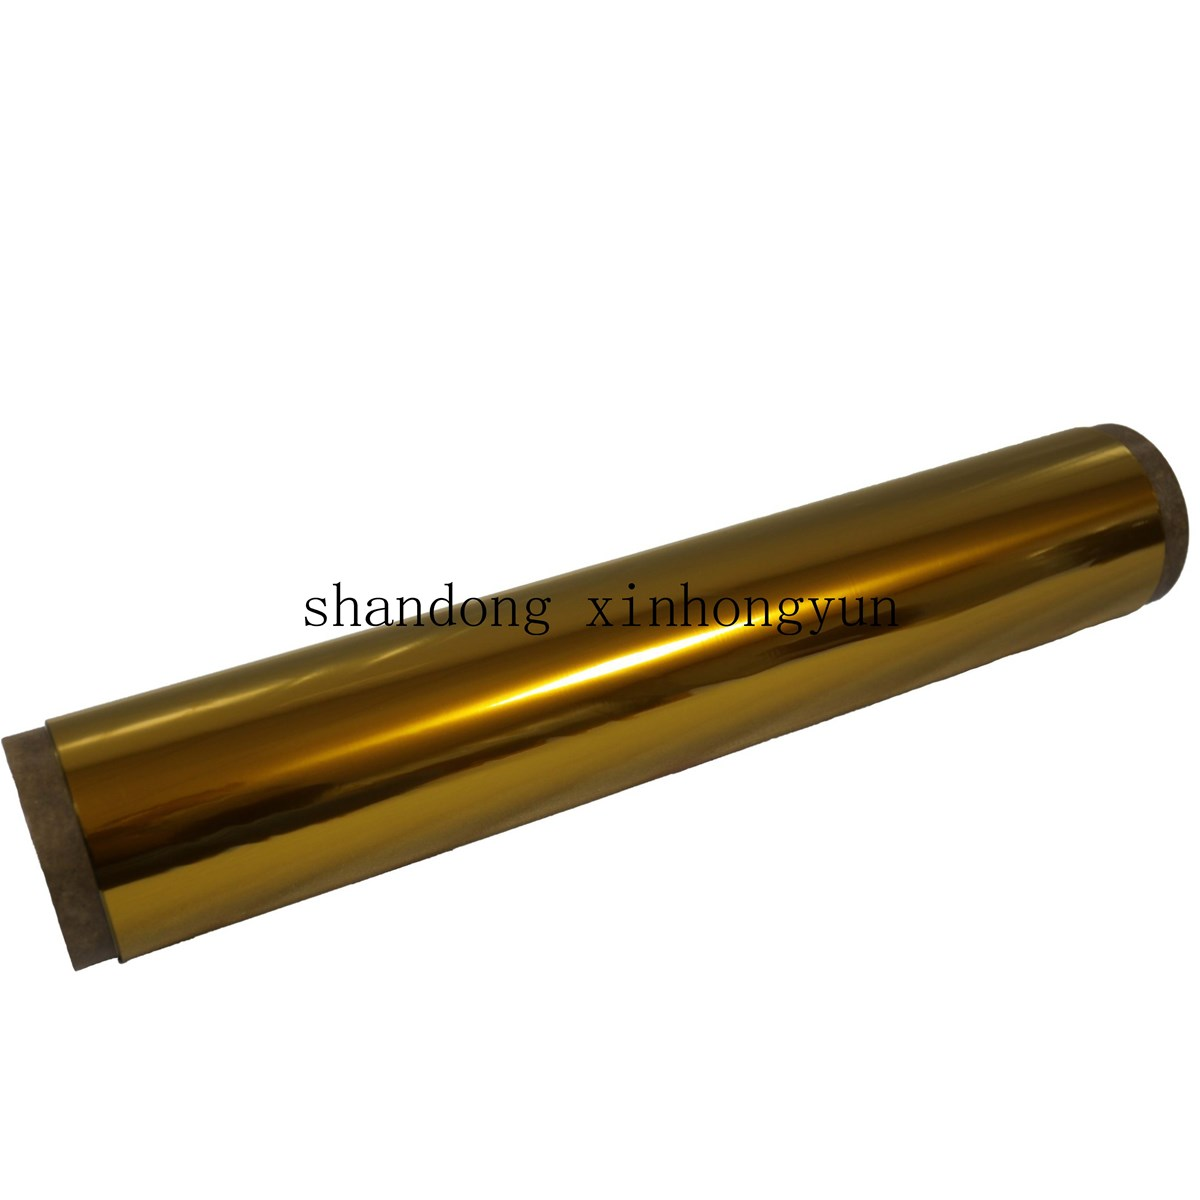 Kapton Film for electrical insulation